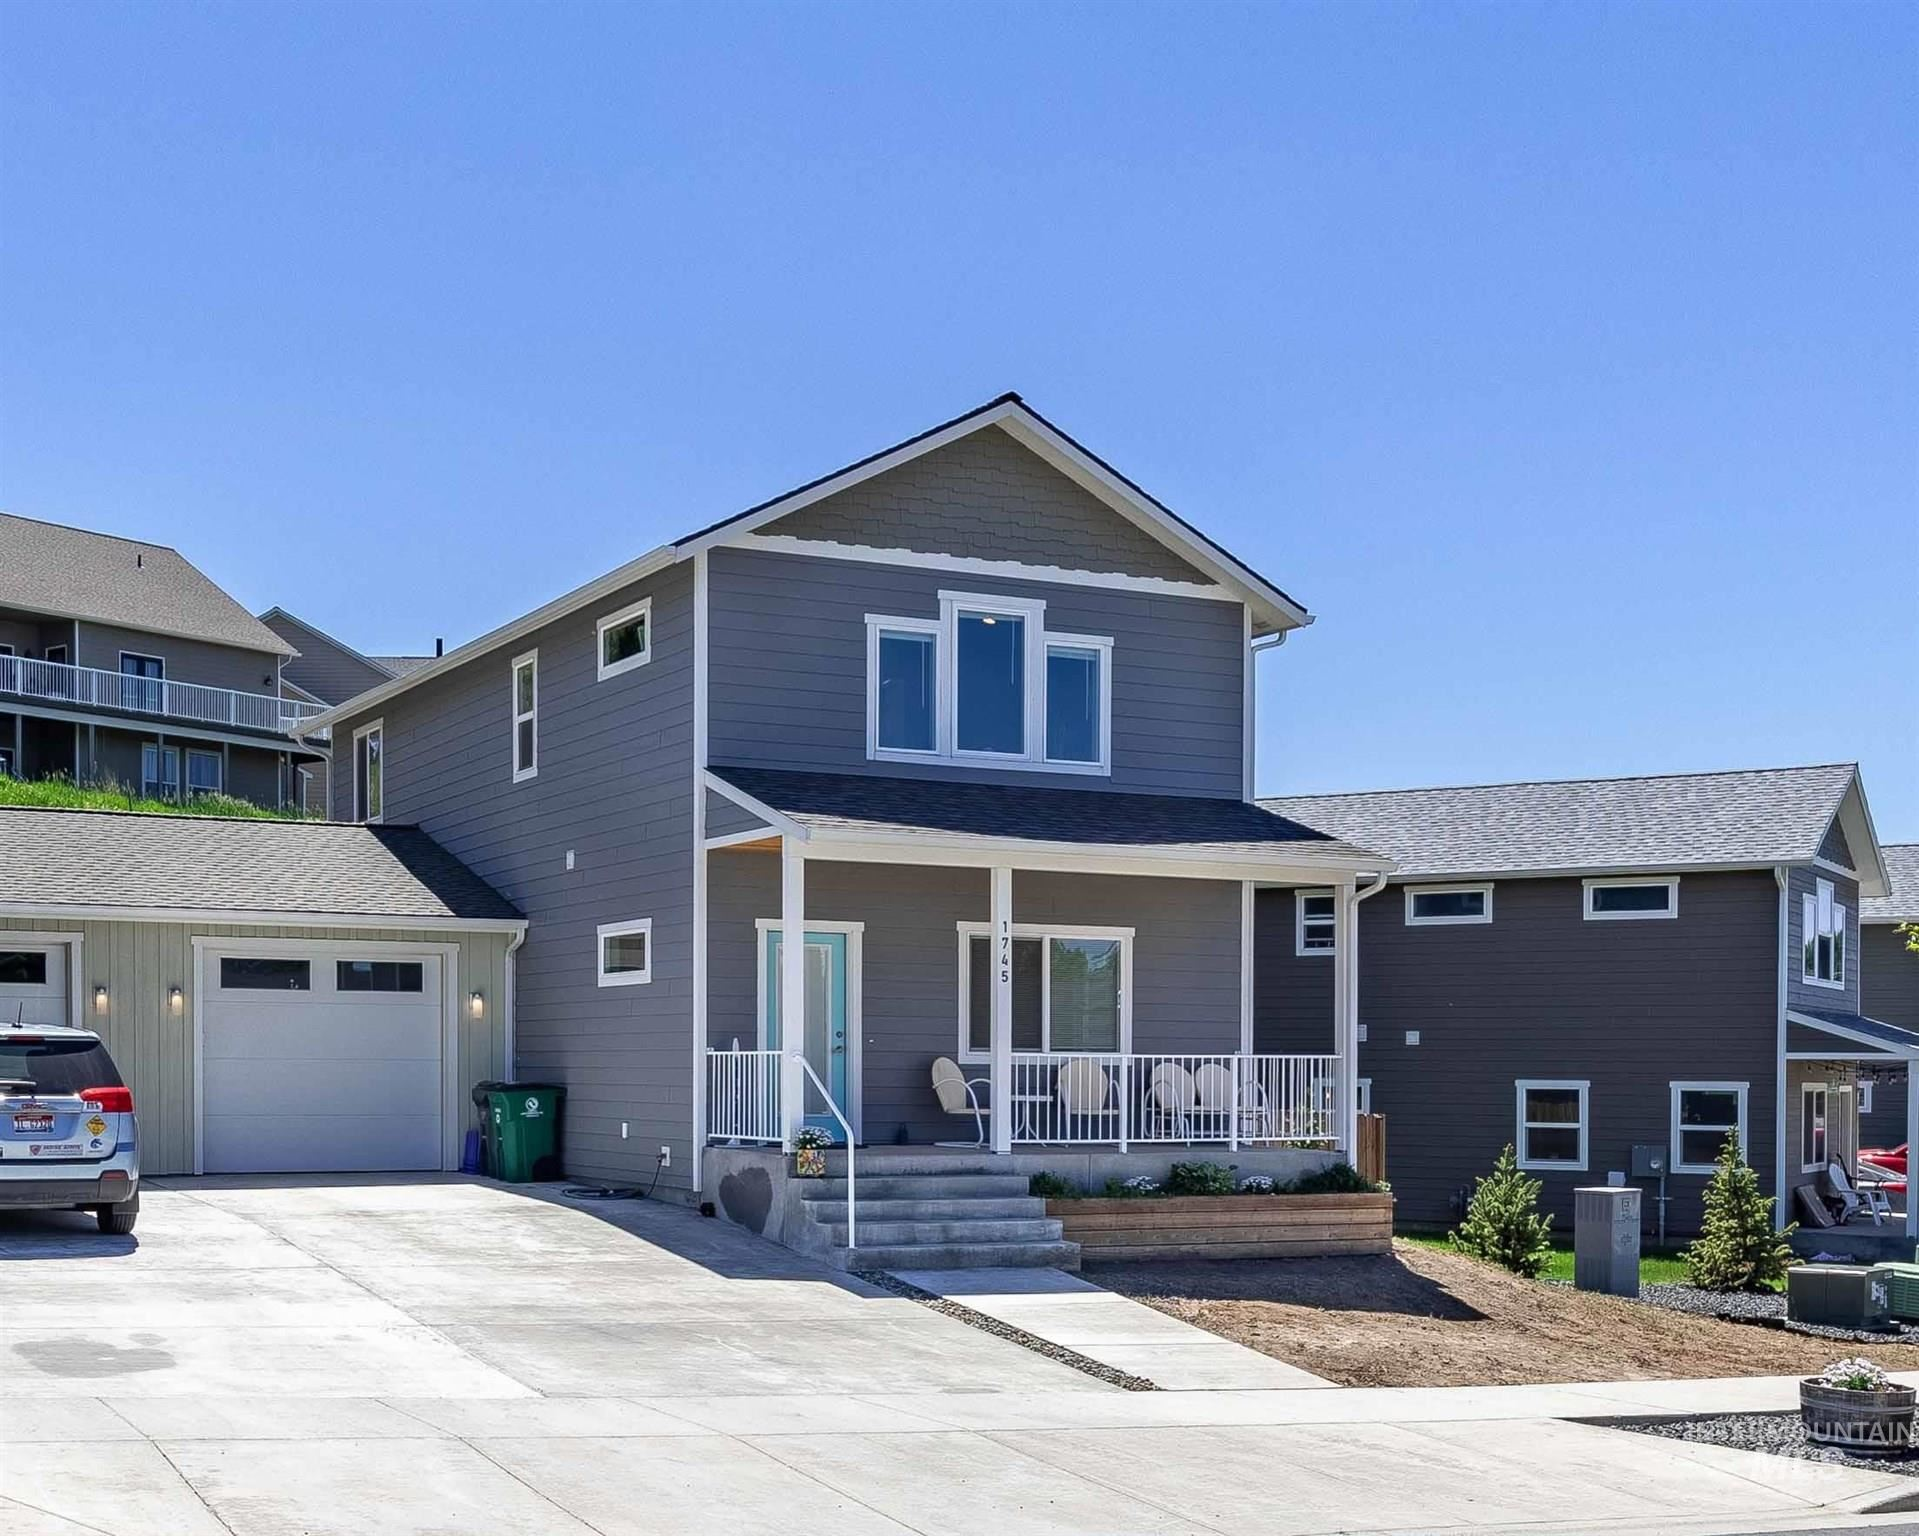 Photo of 1745 E Third, Moscow, ID 83843-7021 (MLS # 98807230)